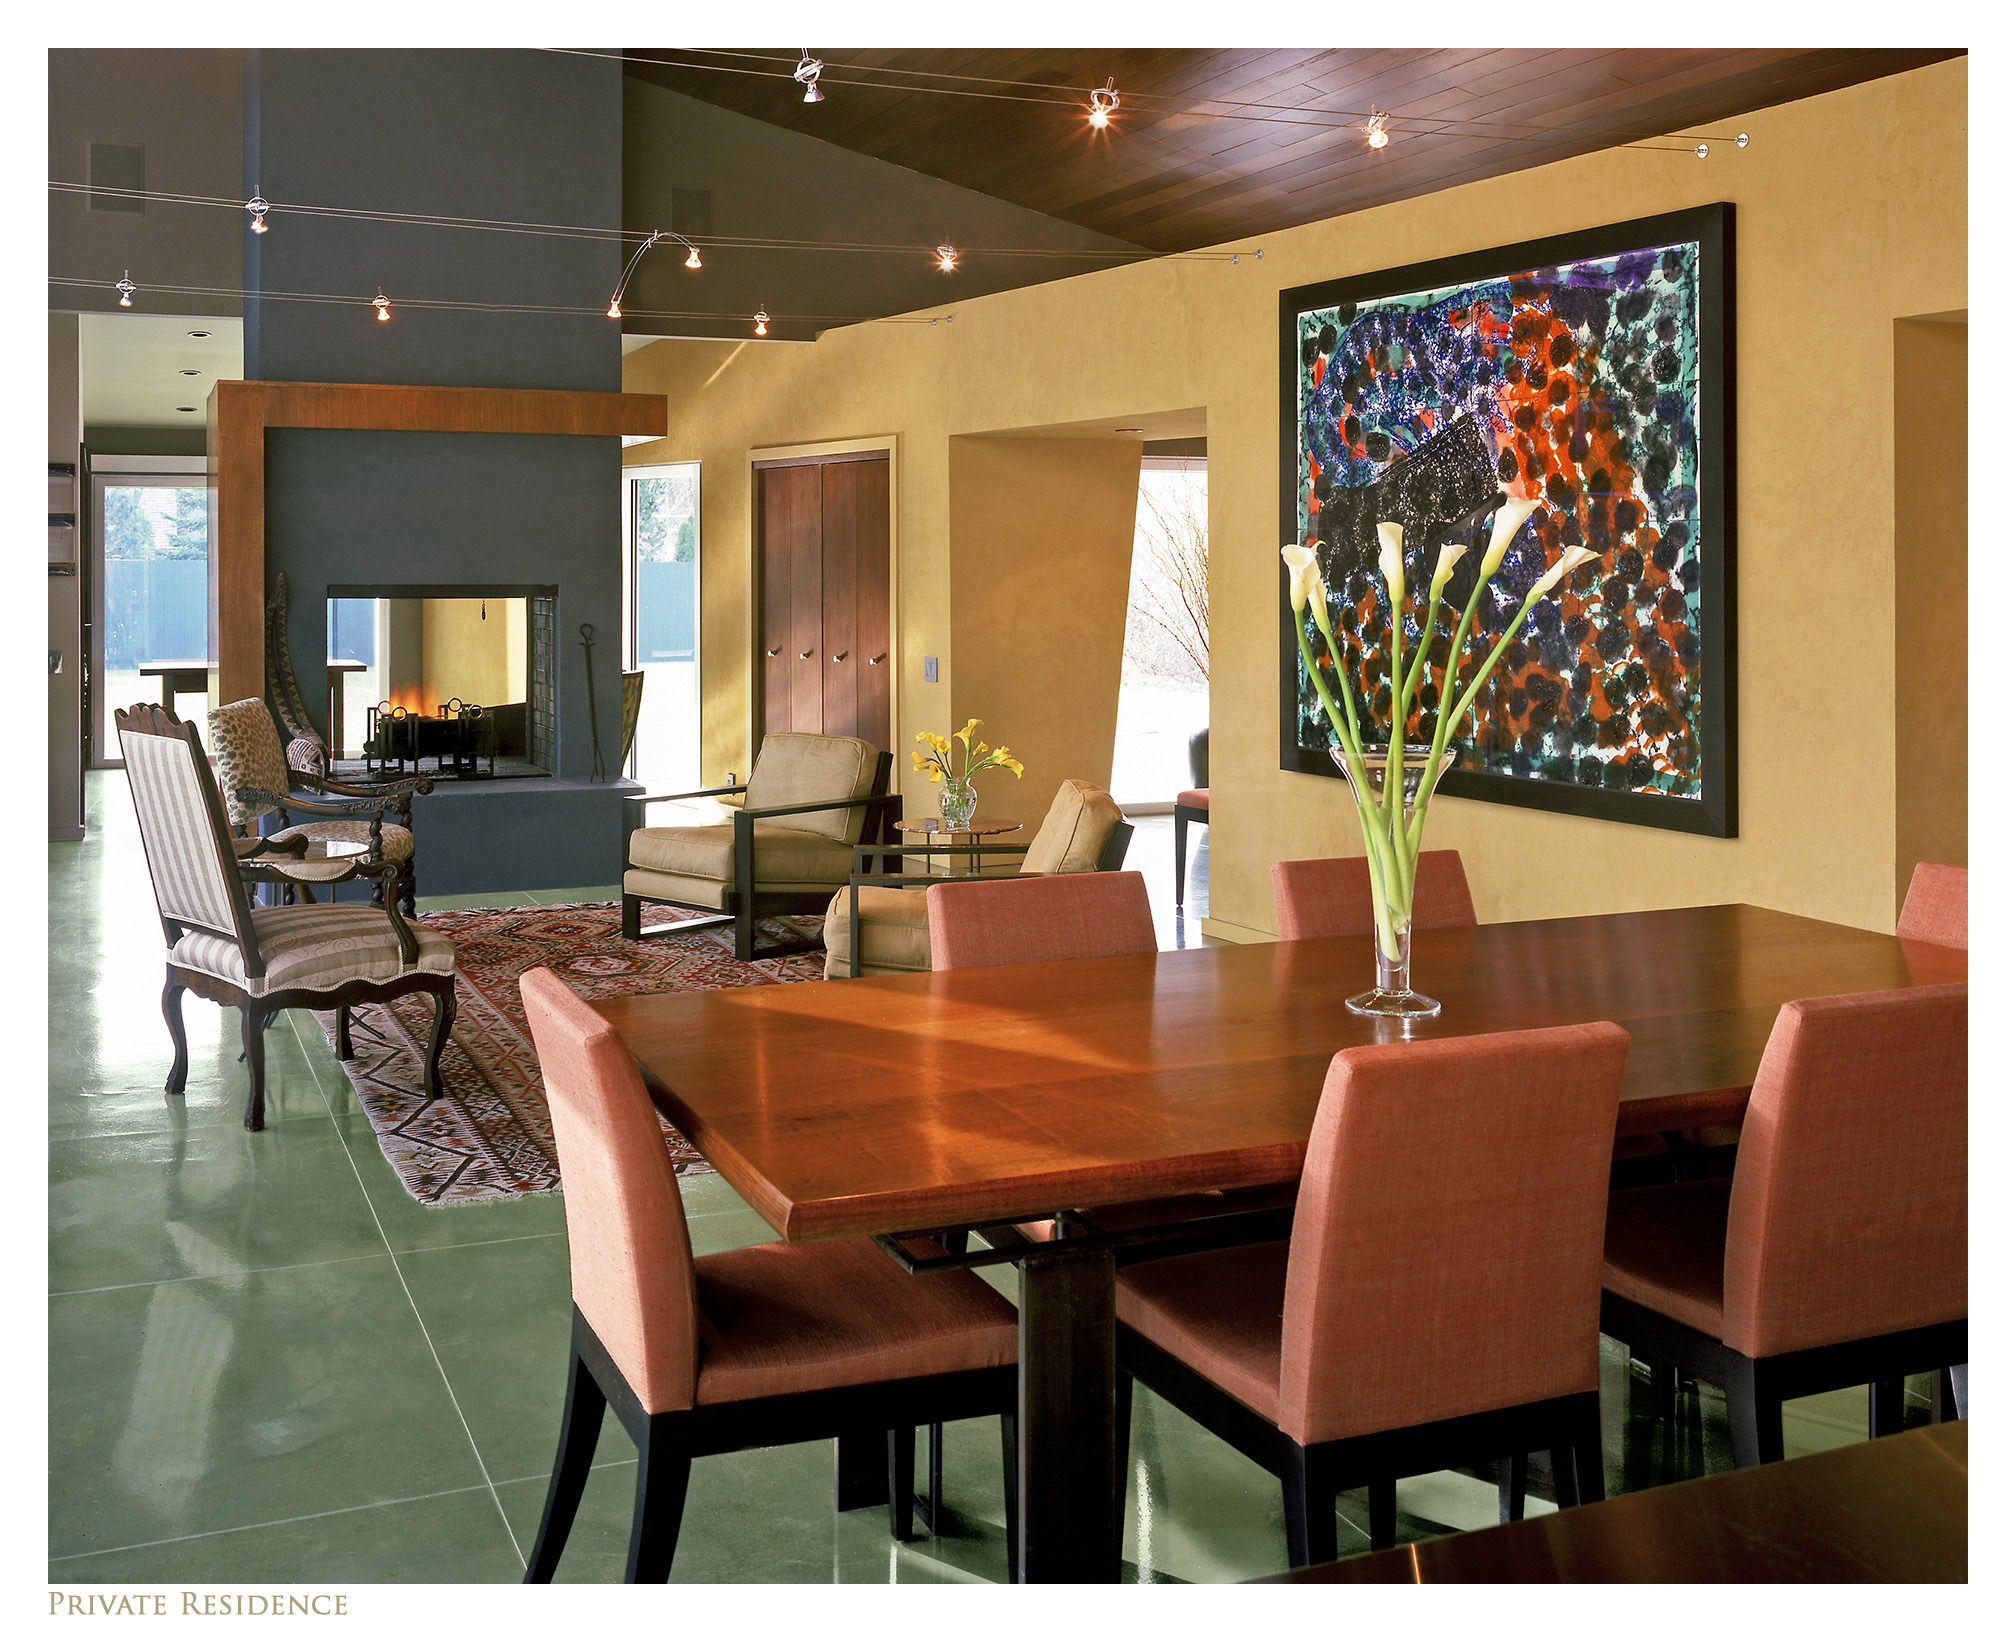 048_Robert-Benson-Photography-Residential-Wagner-Ross-Dining-B.JPG